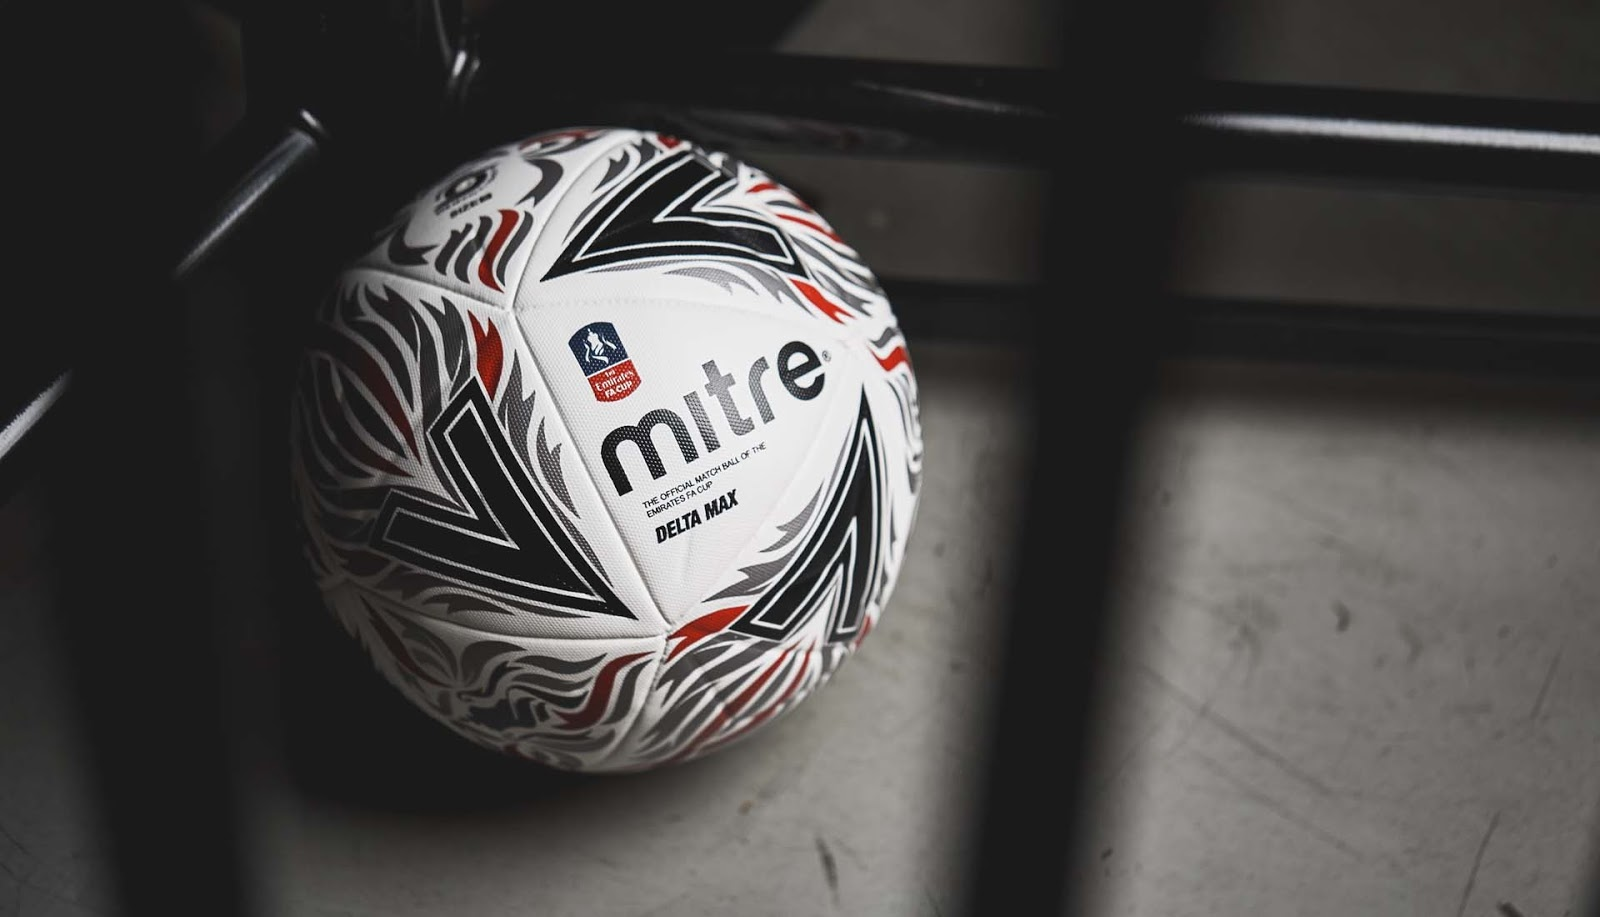 Mitre Delta Max 2018-19 FA Cup Ball Released - Footy Headlines